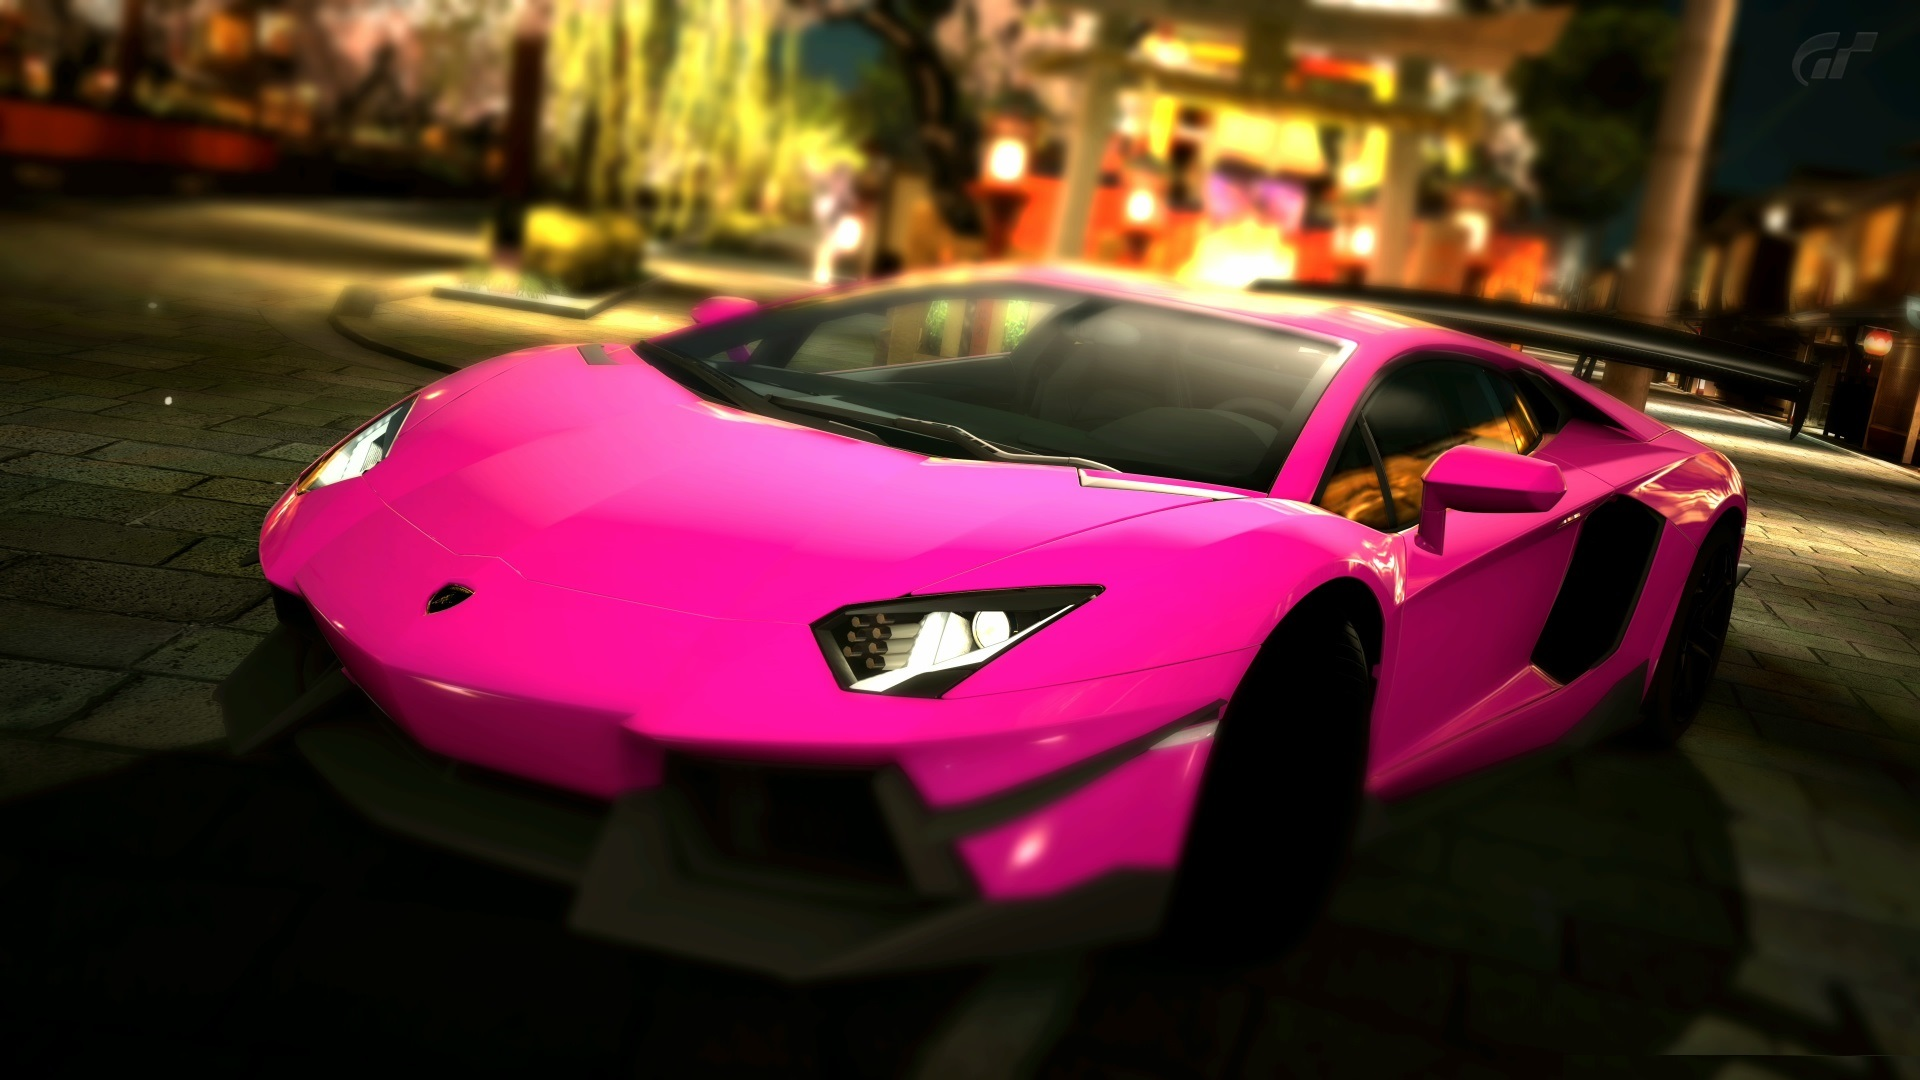 pink car wallpaper